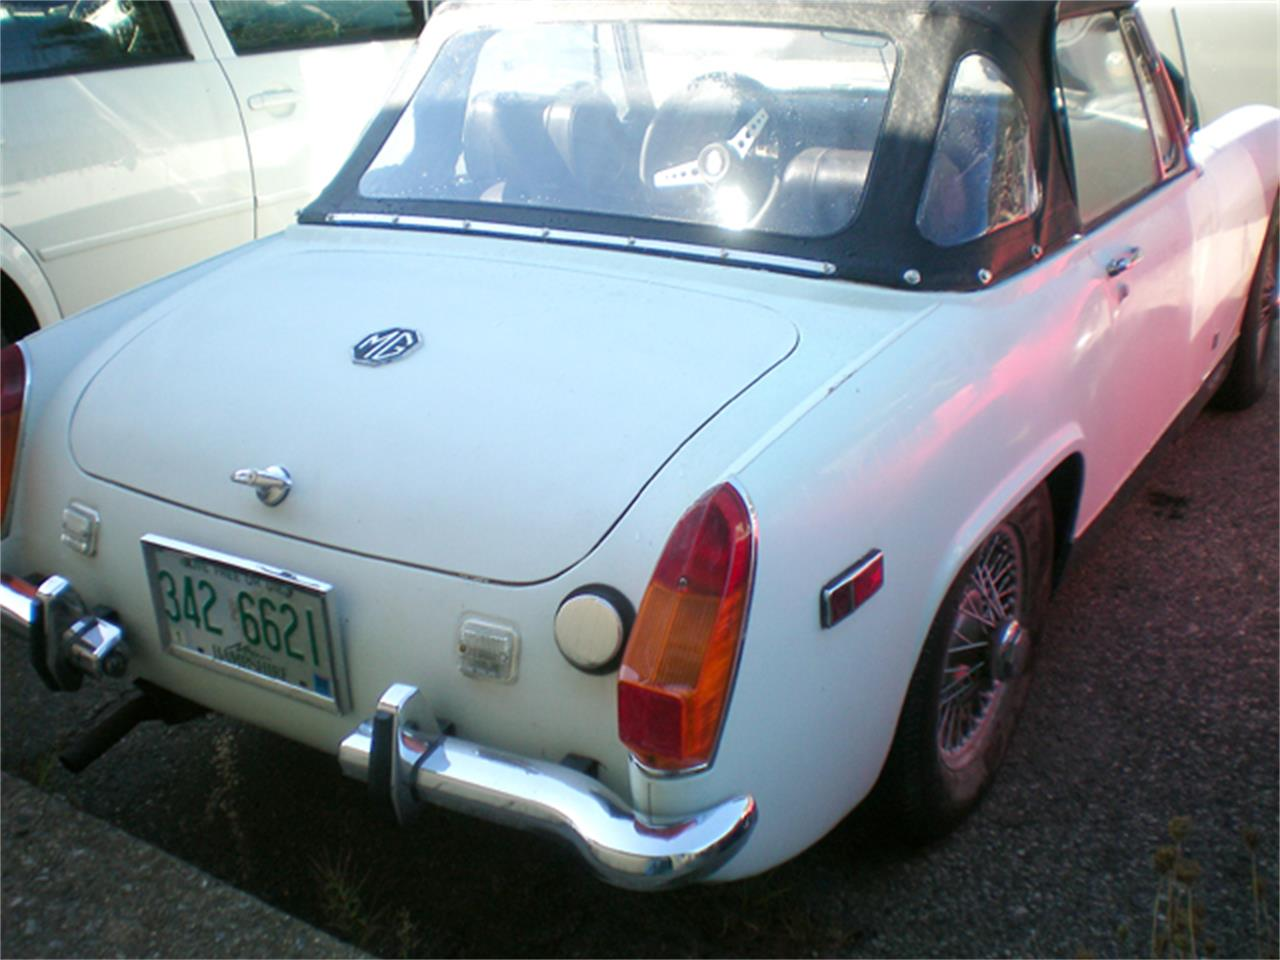 Large Picture of Classic '70 MG Midget located in New Hampshire - $9,900.00 - JBT4